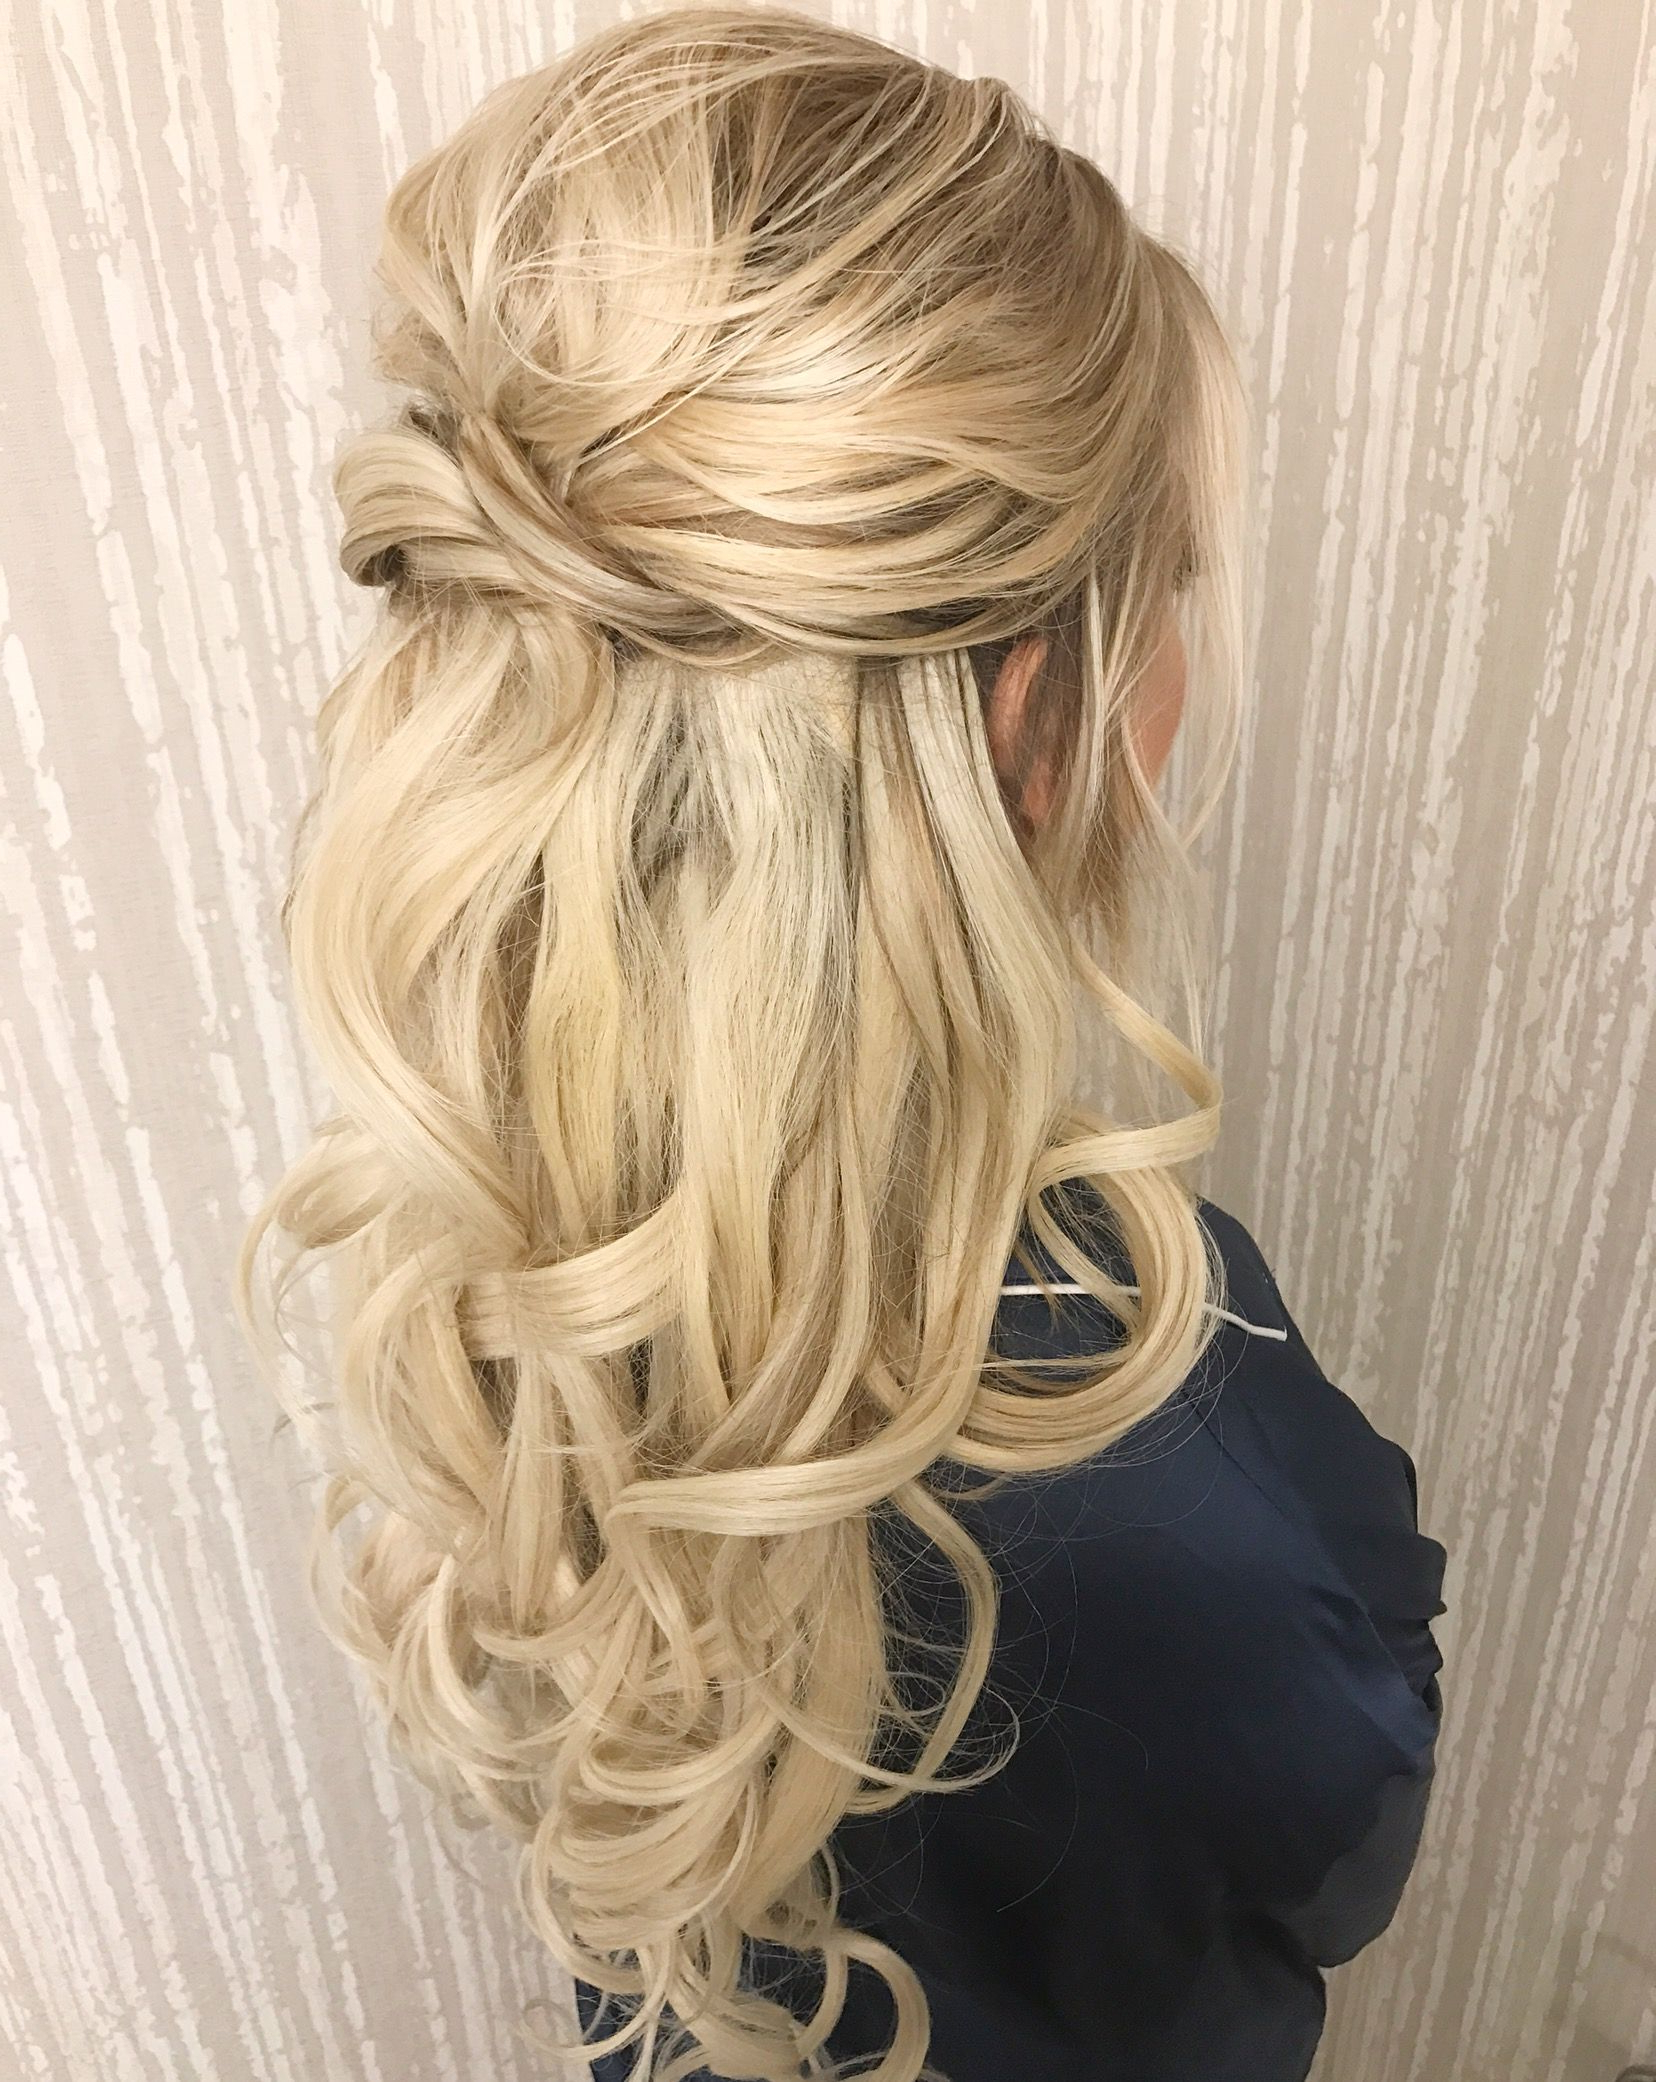 Wedding Hairstyles With Newest Golden Half Up Half Down Curls Bridal Hairstyles (View 20 of 20)